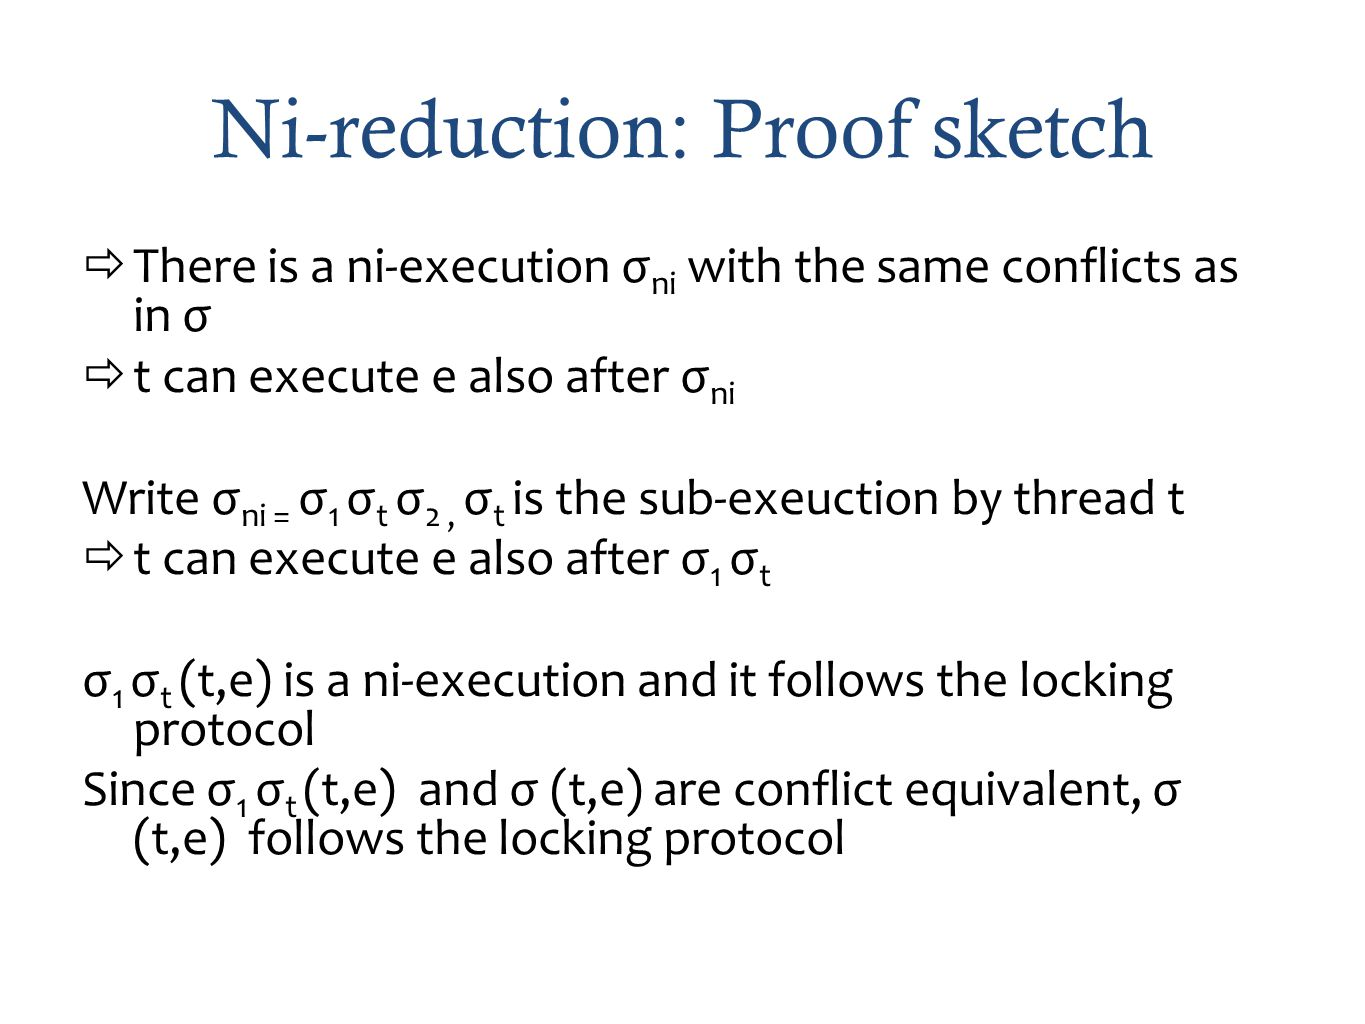 Ni-reduction: Proof sketch There is a ni-execution σ ni with the same conflicts as in σ t can execute e also after σ ni Write σ ni = σ 1 σ t σ 2, σ t is the sub-exeuction by thread t t can execute e also after σ 1 σ t σ 1 σ t (t,e) is a ni-execution and it follows the locking protocol Since σ 1 σ t (t,e) and σ (t,e) are conflict equivalent, σ (t,e) follows the locking protocol